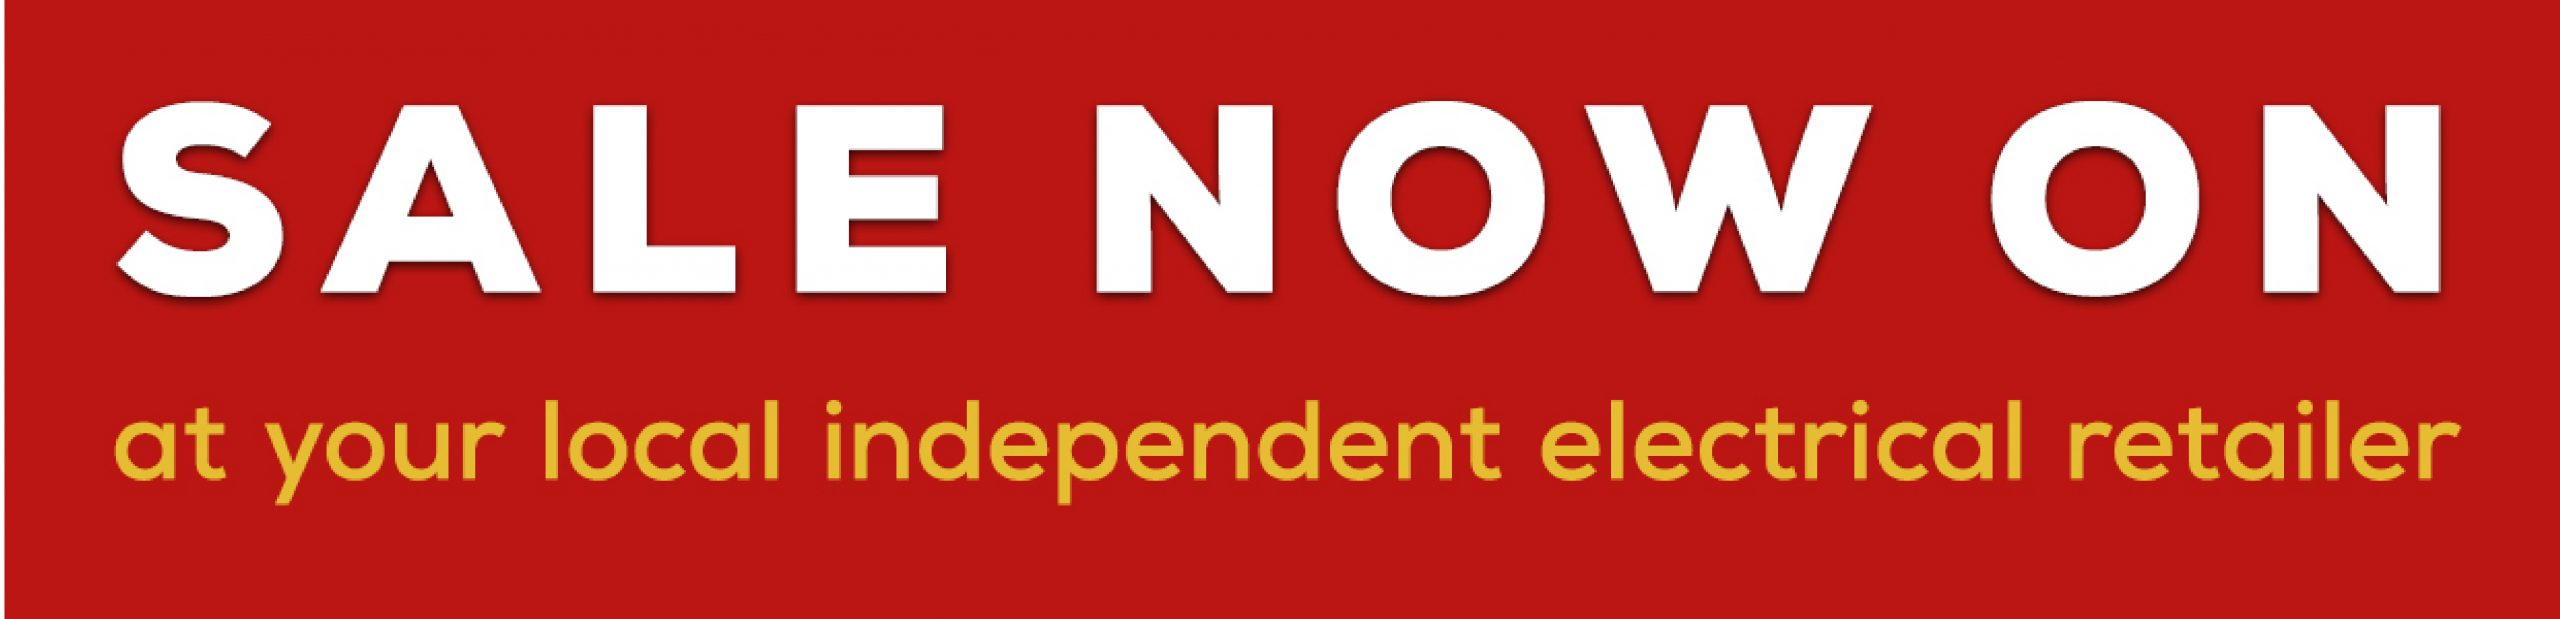 Sale Now On at your local independant electrical retailer